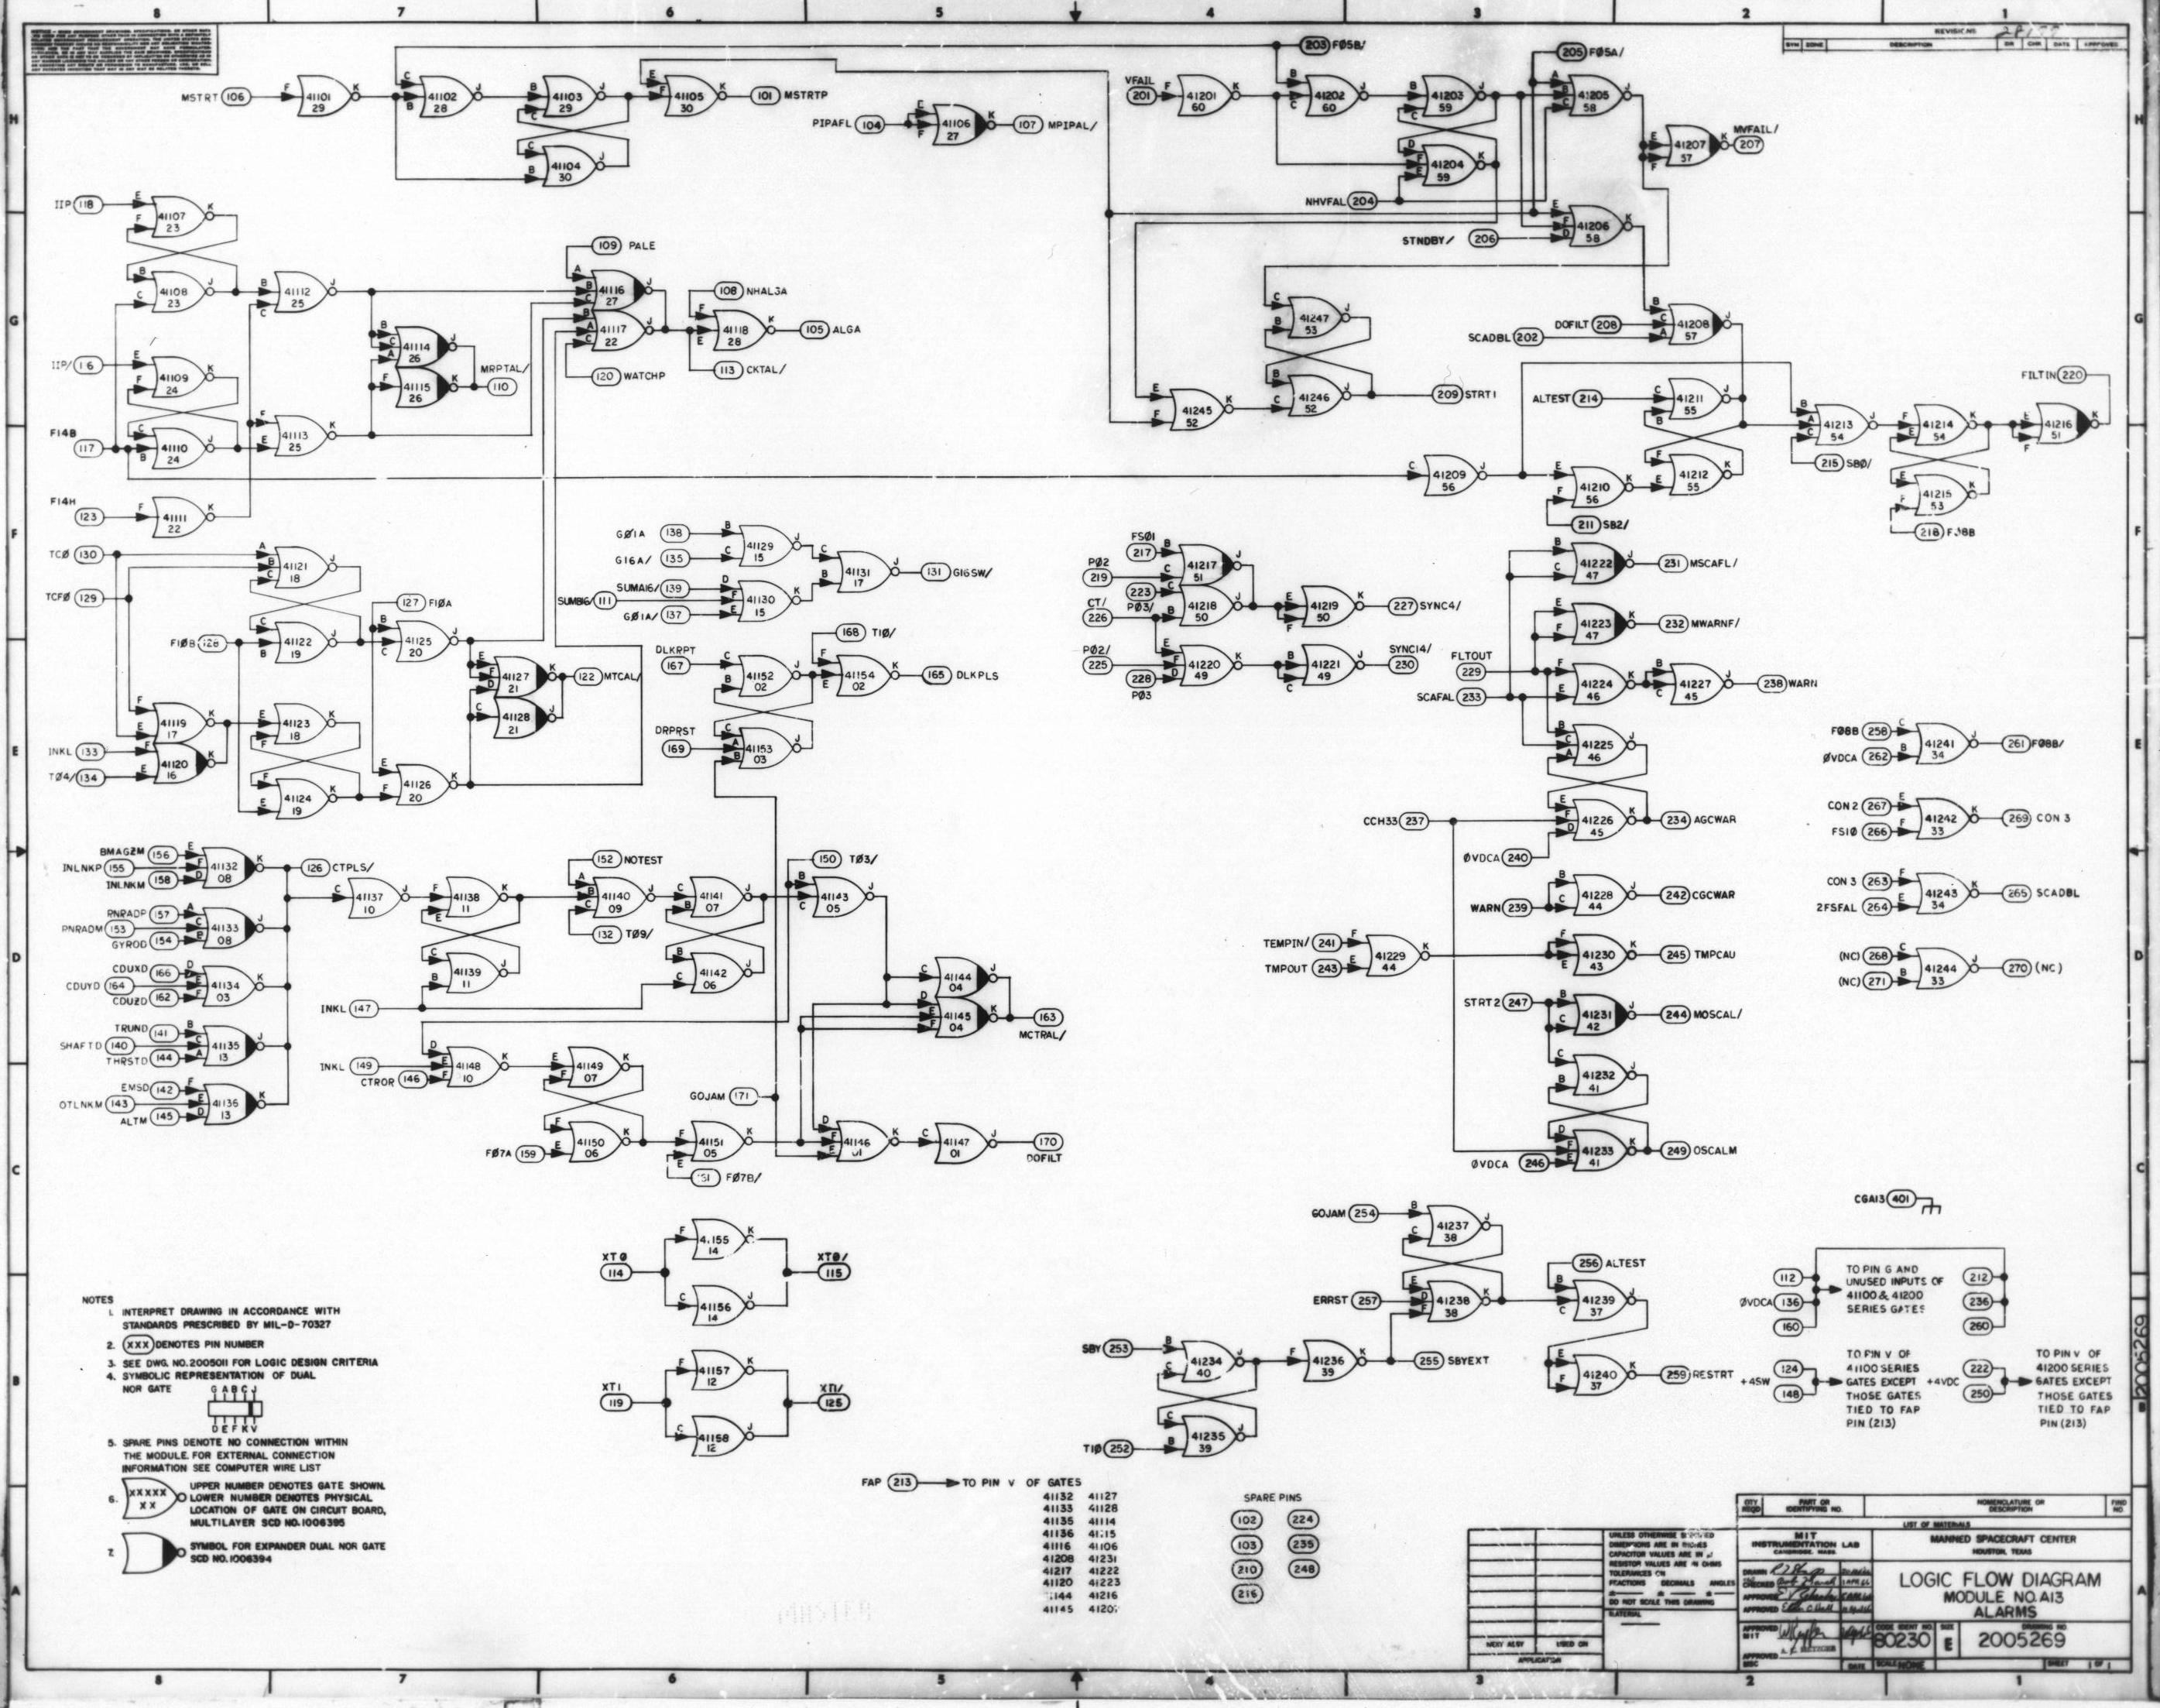 Apollo Guidance Computer Agc Schematics Logic Diagram Of And Gate Drawing No